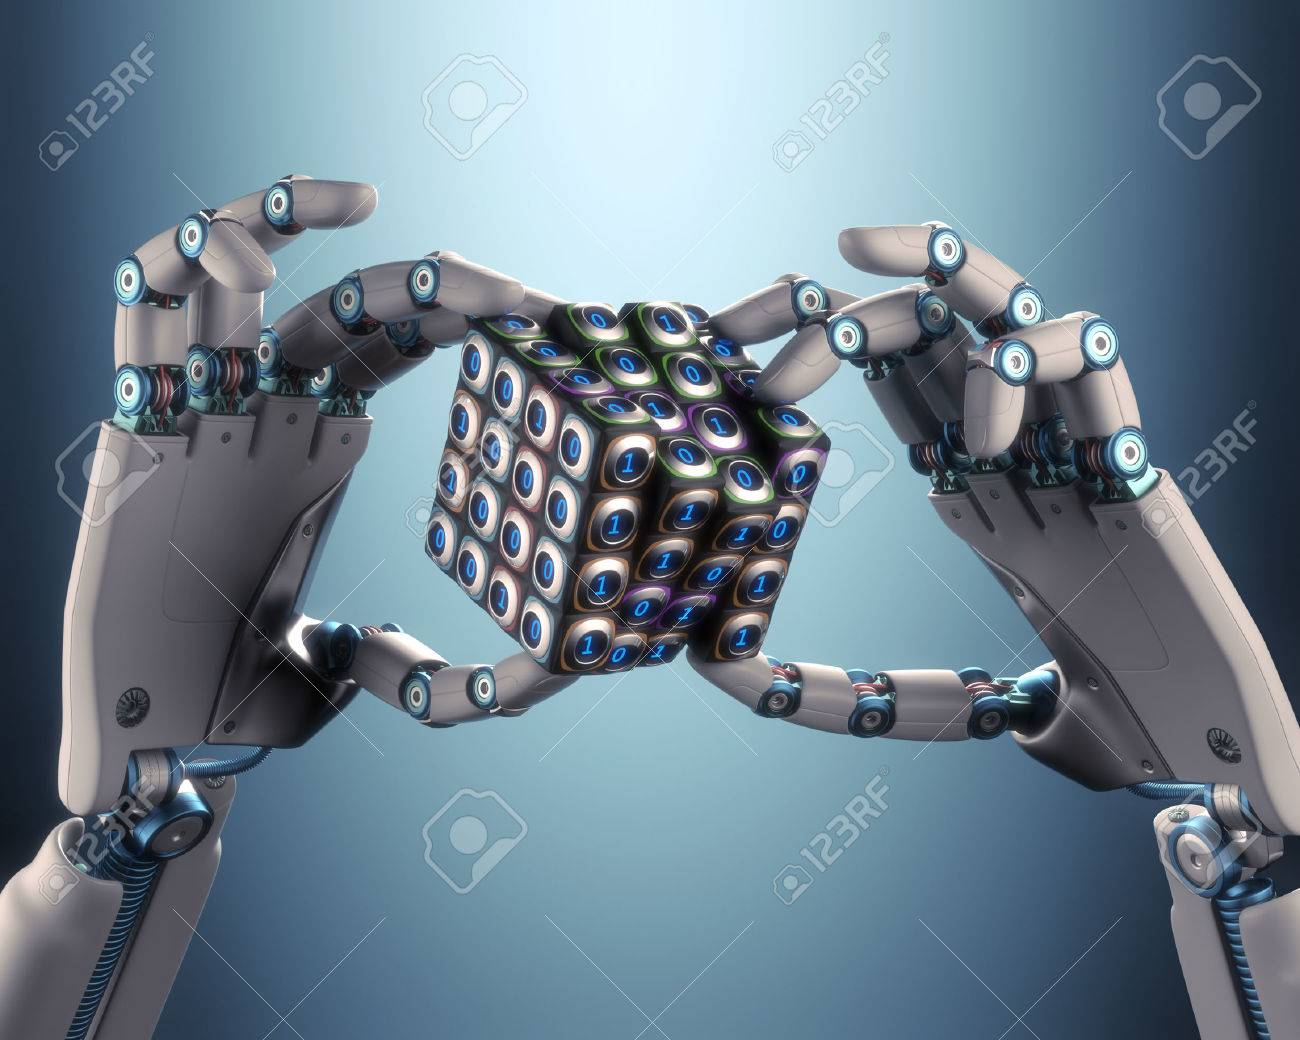 Robot hand holding a binary cube concept of logical processing. Clipping path included. - 32938062